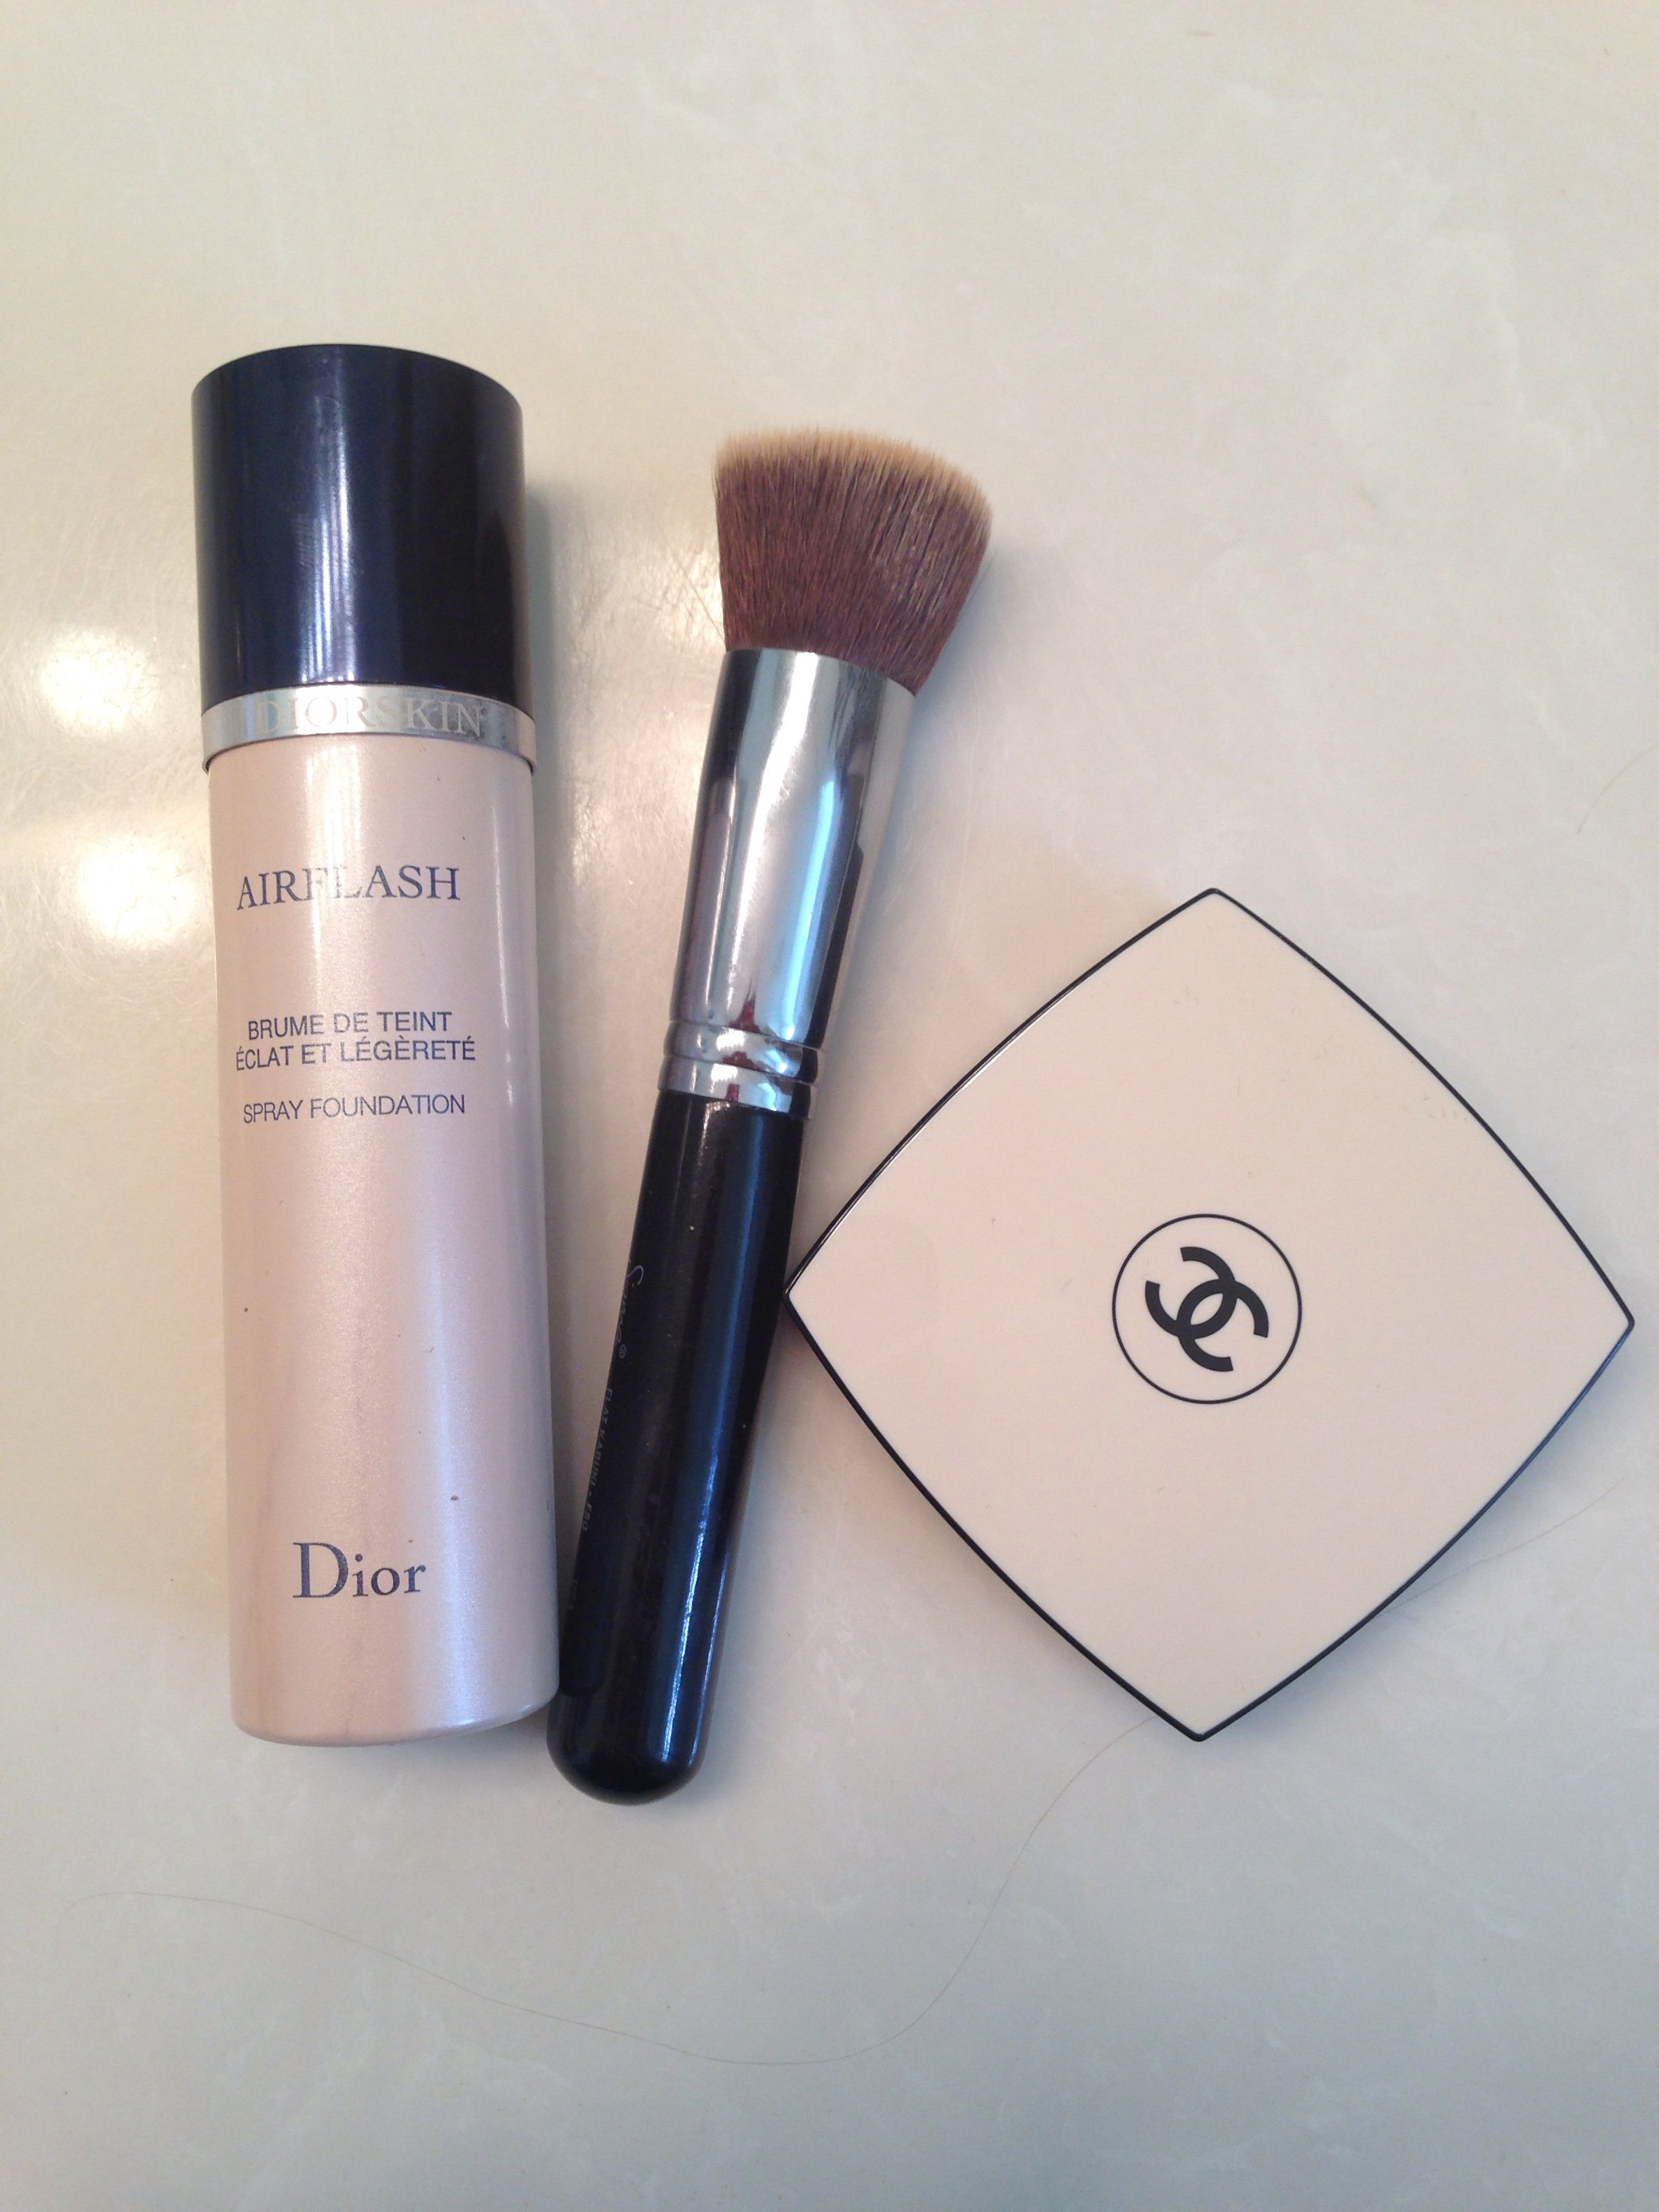 My flawless face recipe dior airflash sigma f80 brush